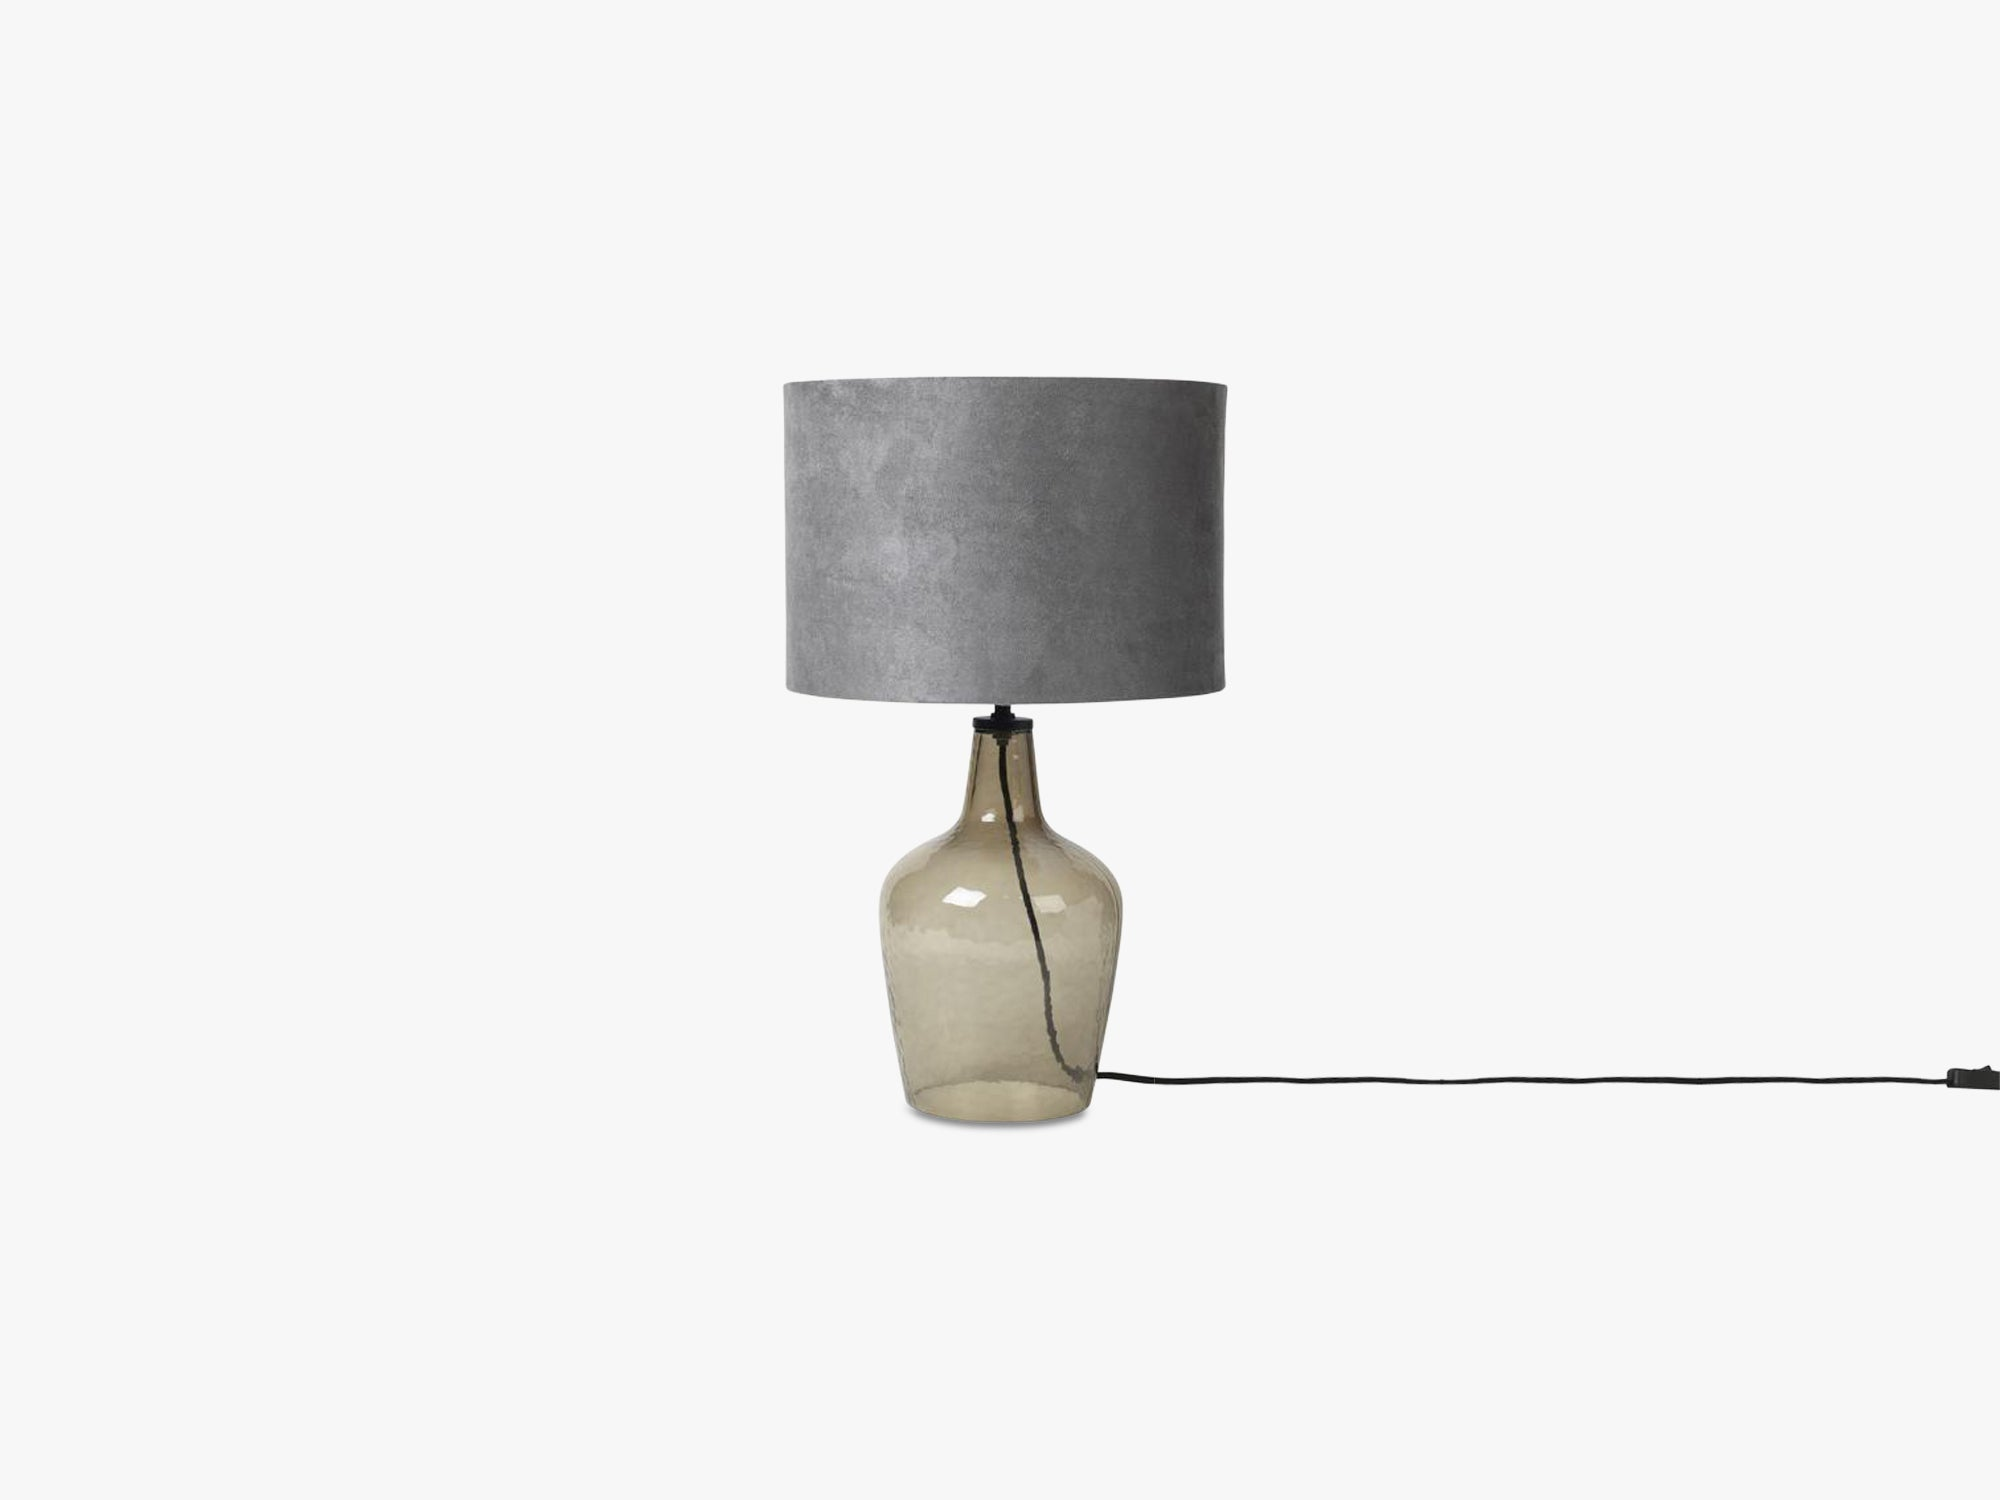 Bordlampe Clarise Glas, metal/poly black/grey shade fra Broste Copenhagen